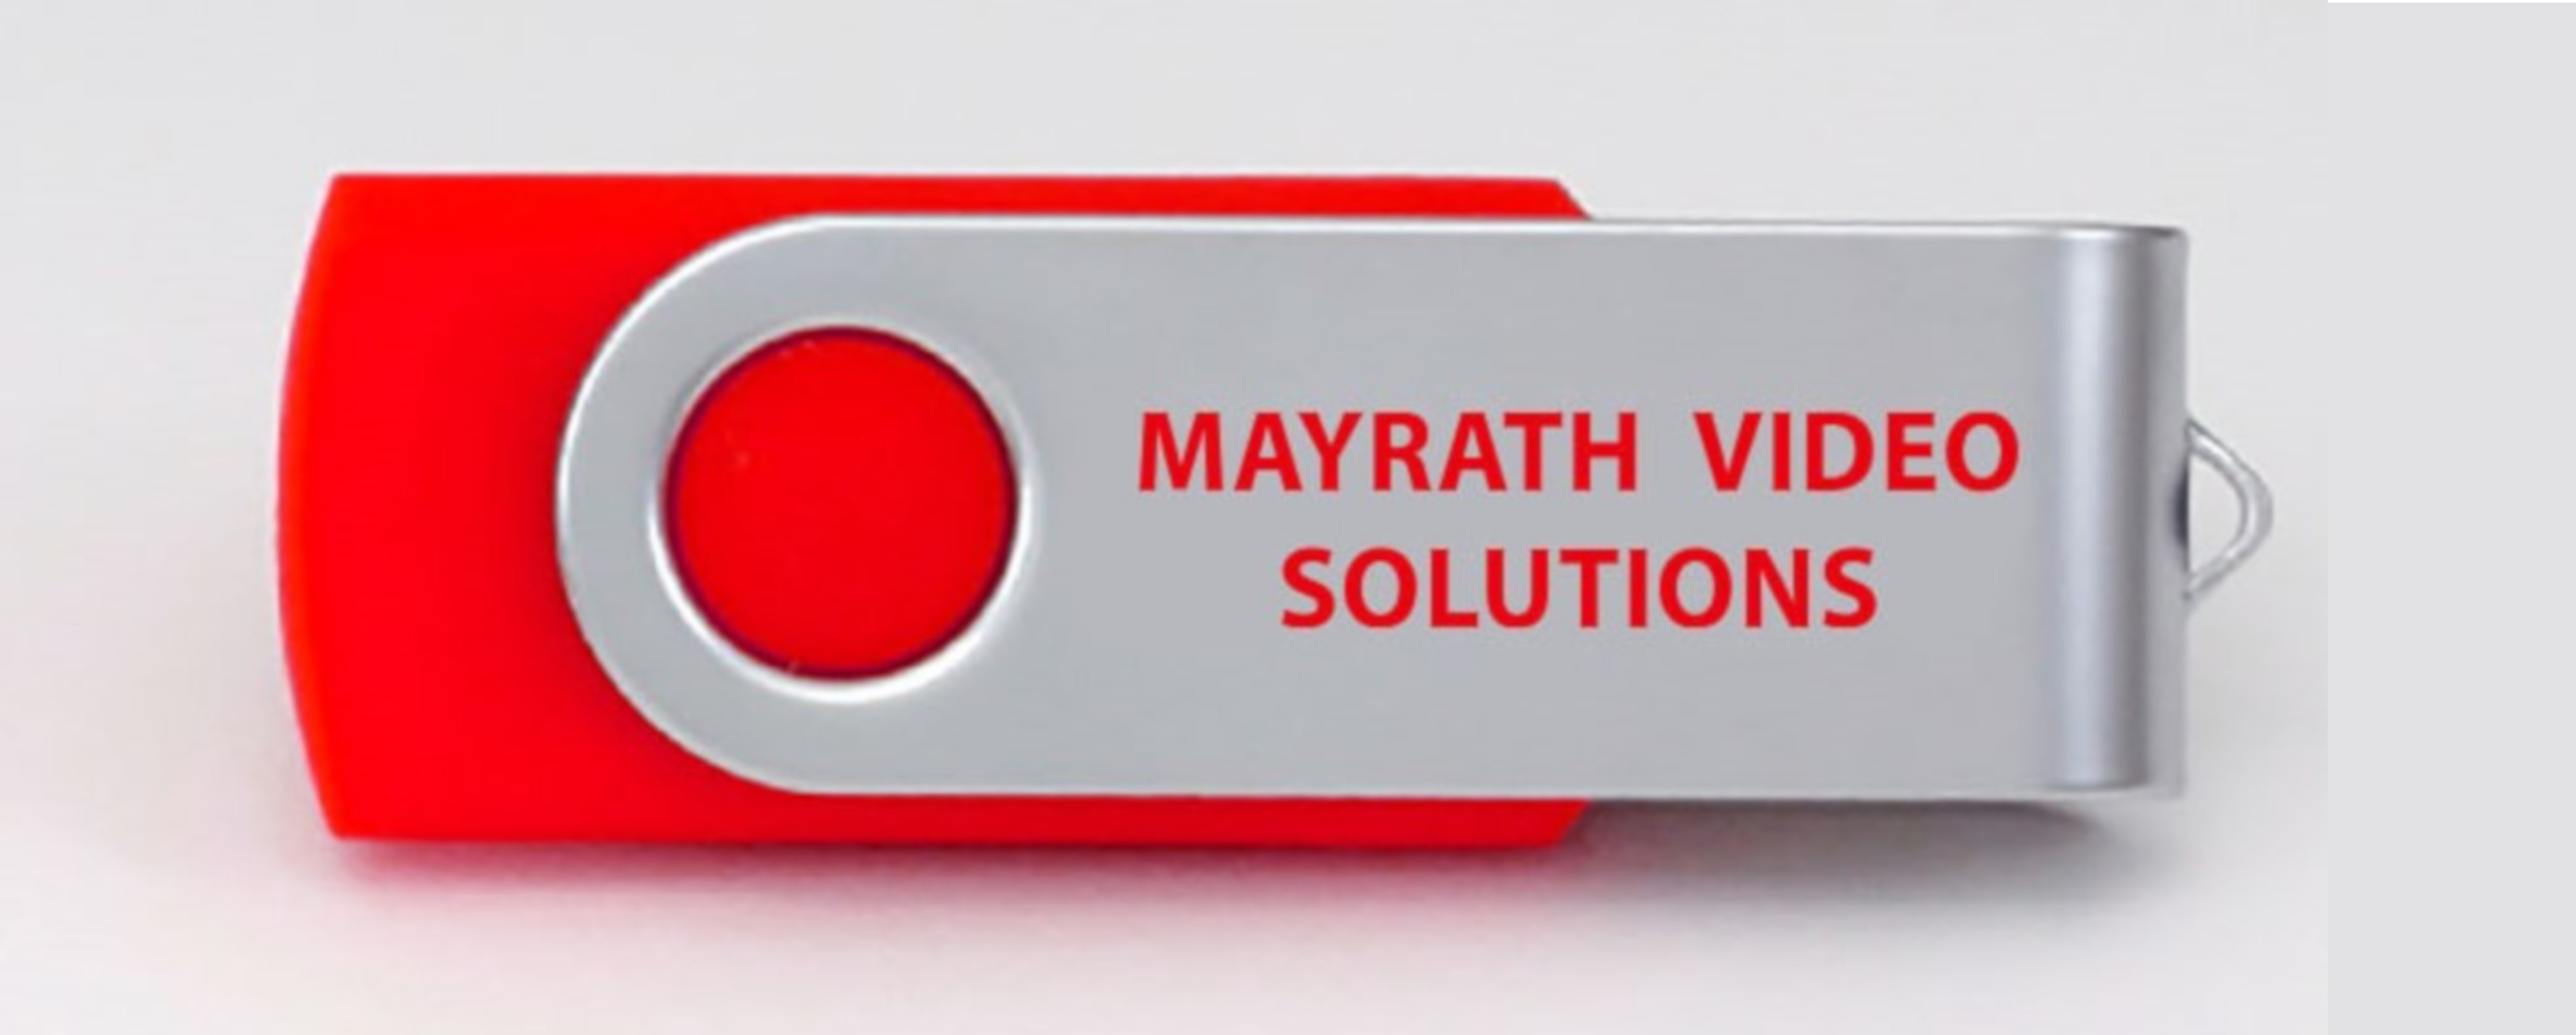 Mayrath Video Solutions